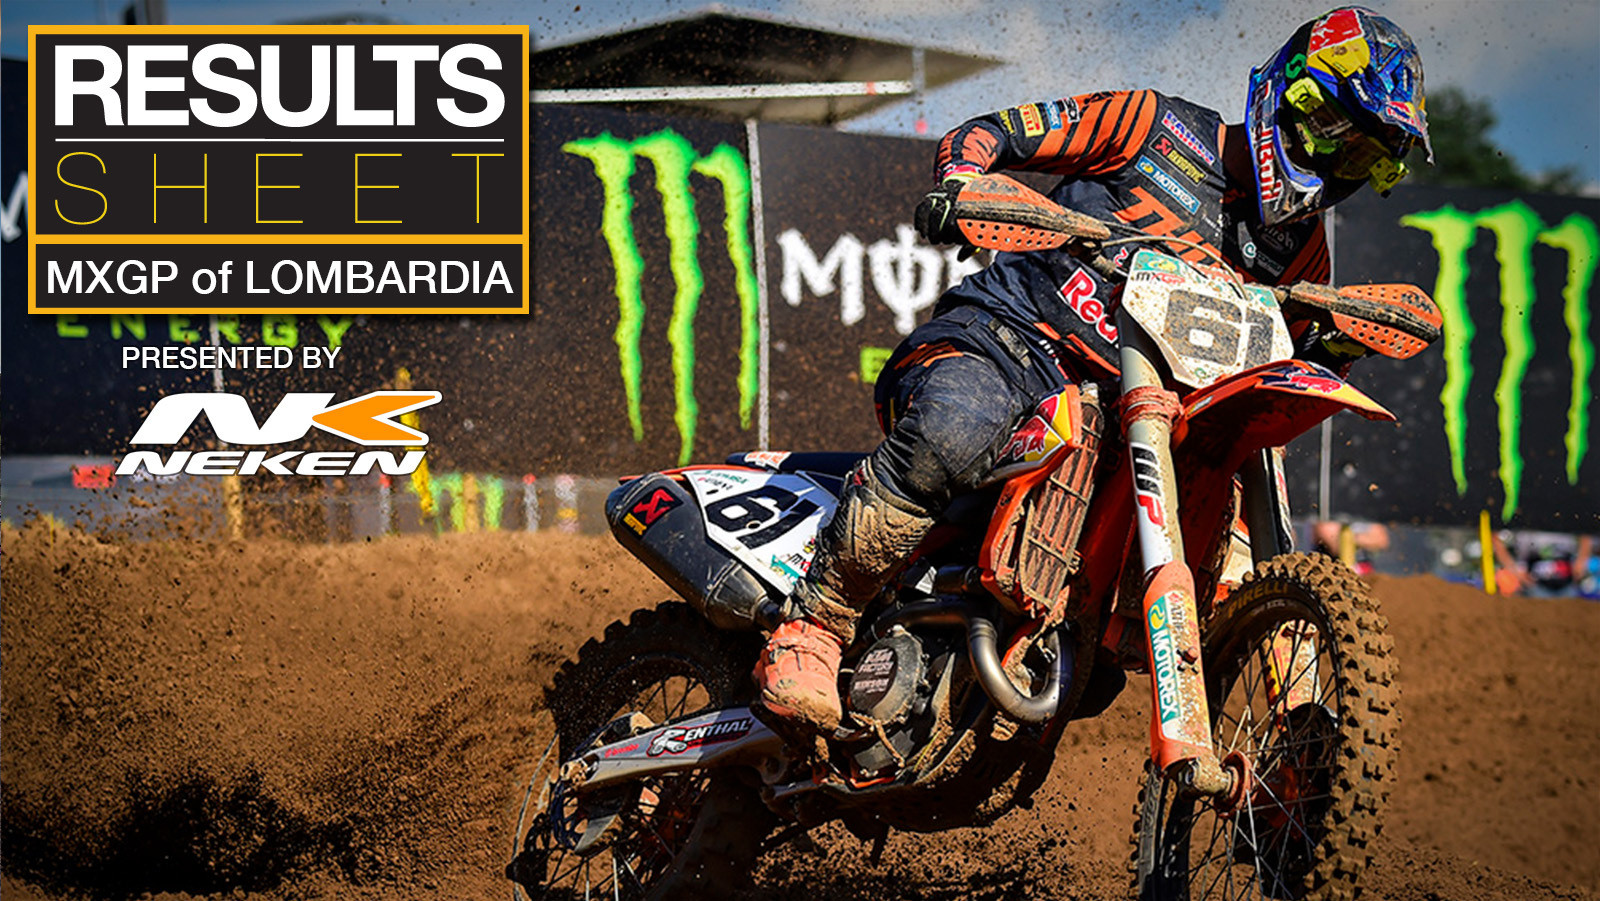 Results Sheet: 2020 MXGP of Lombardia